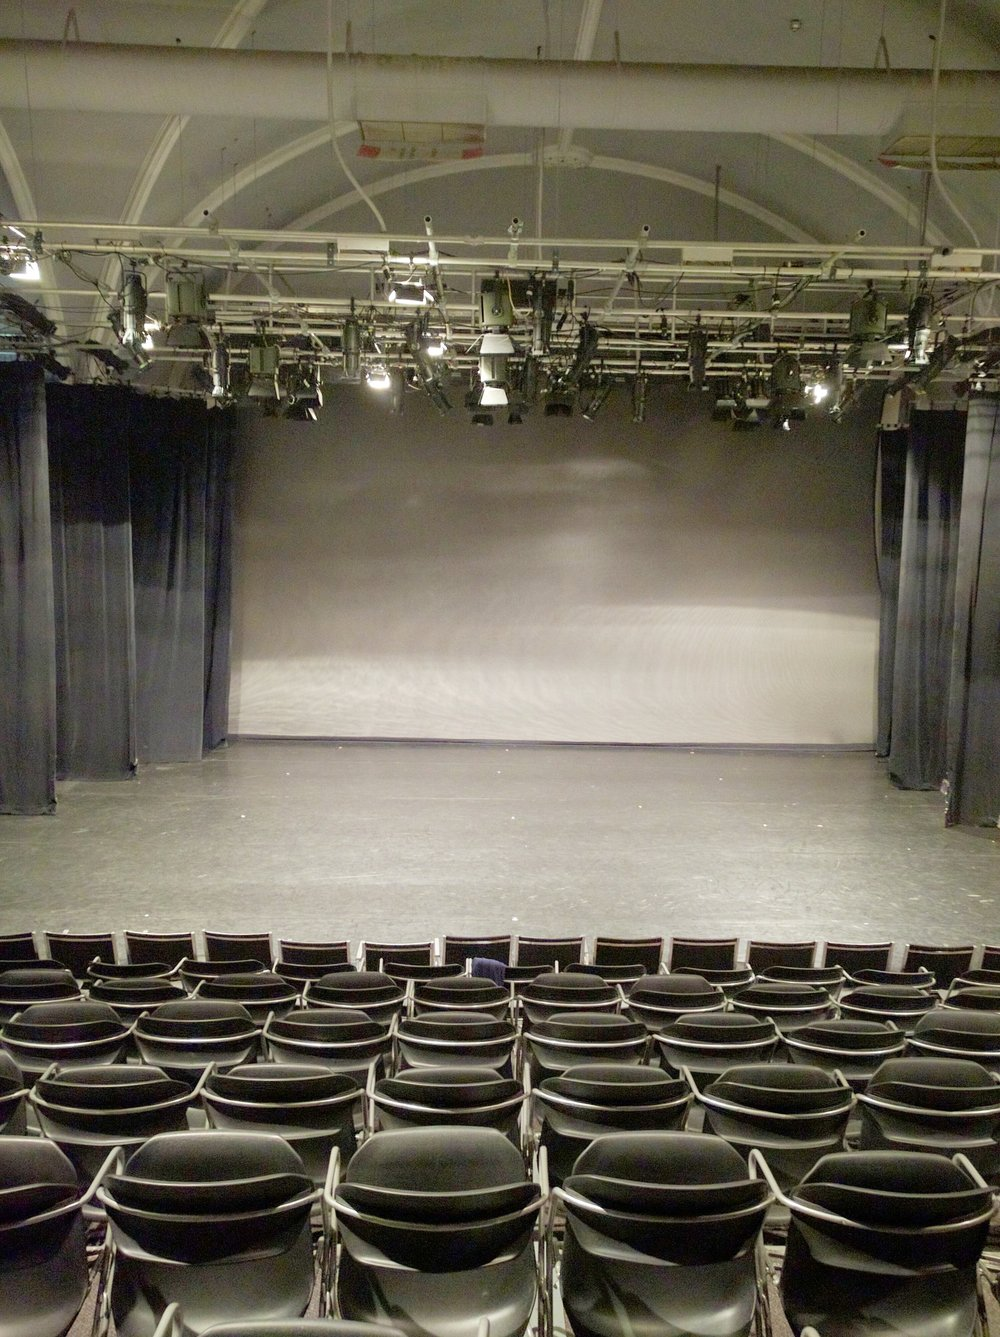 Theatre with full masking